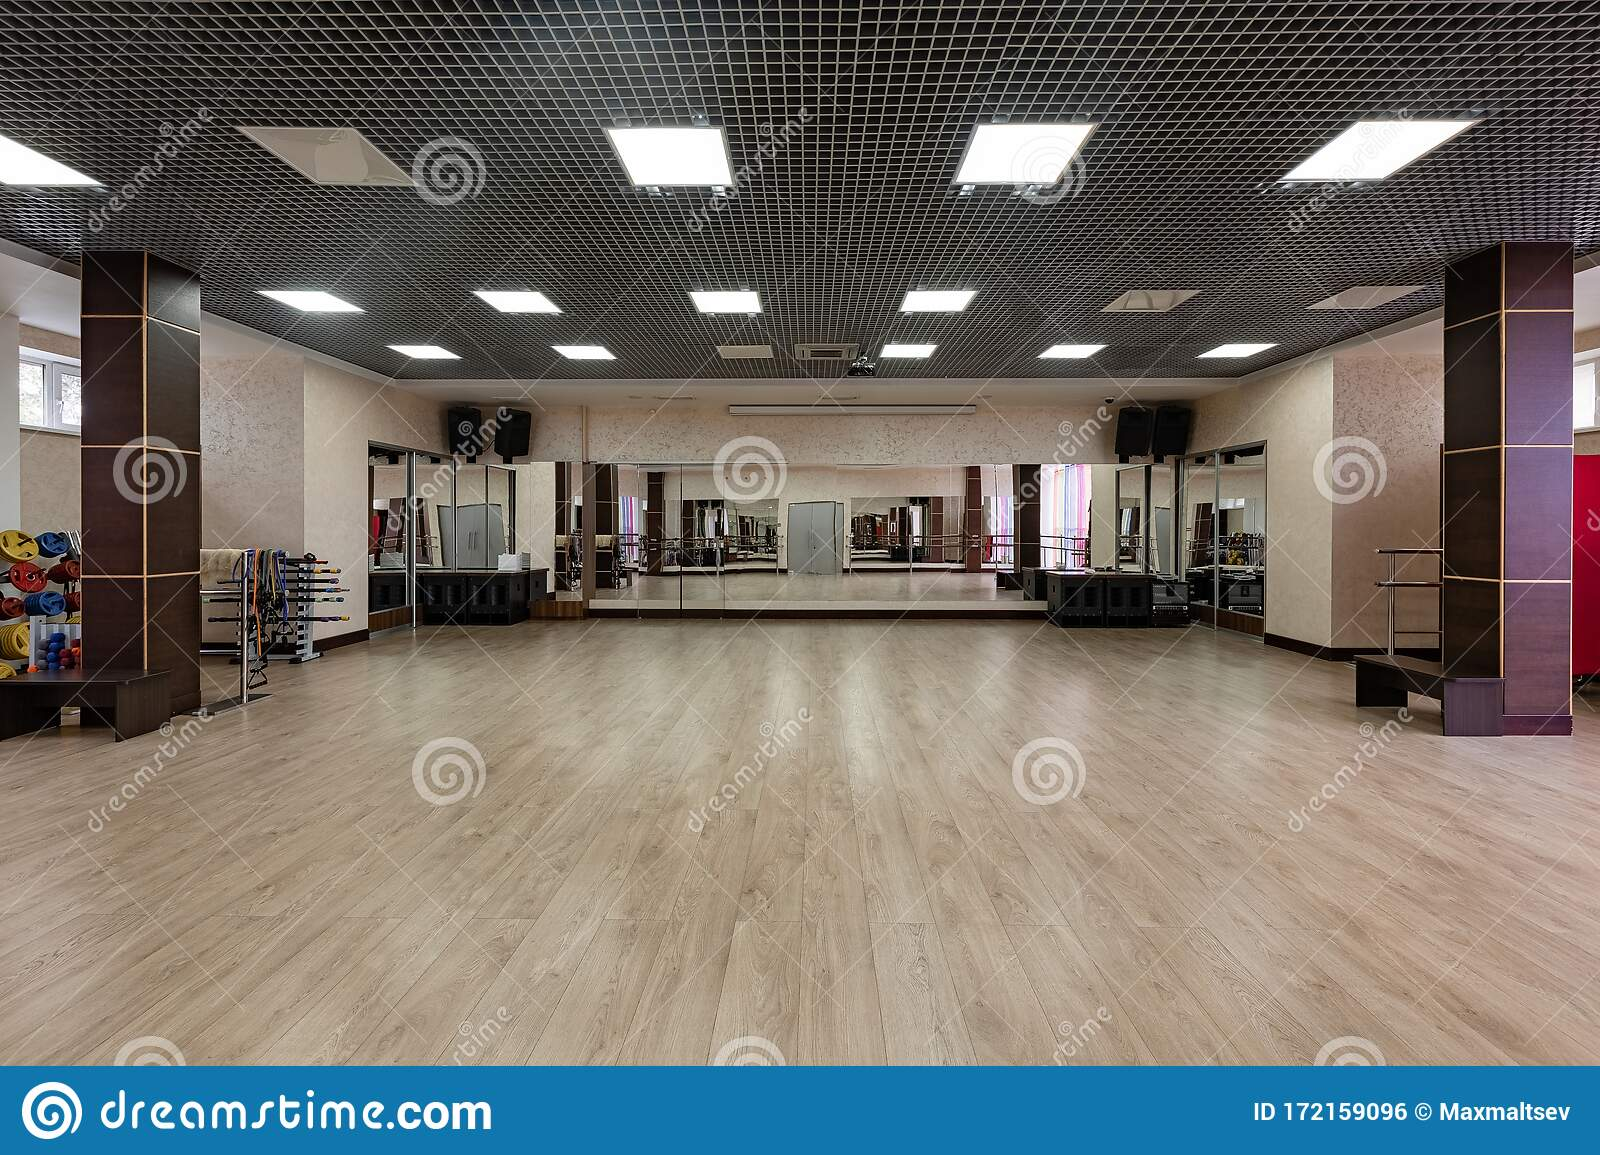 Group Fitness Room Modern Interior Design Fitness Workout Fitness Gym Background Gym Equipment Background Empty Stock Photo Image Of Body Exercise 172159096